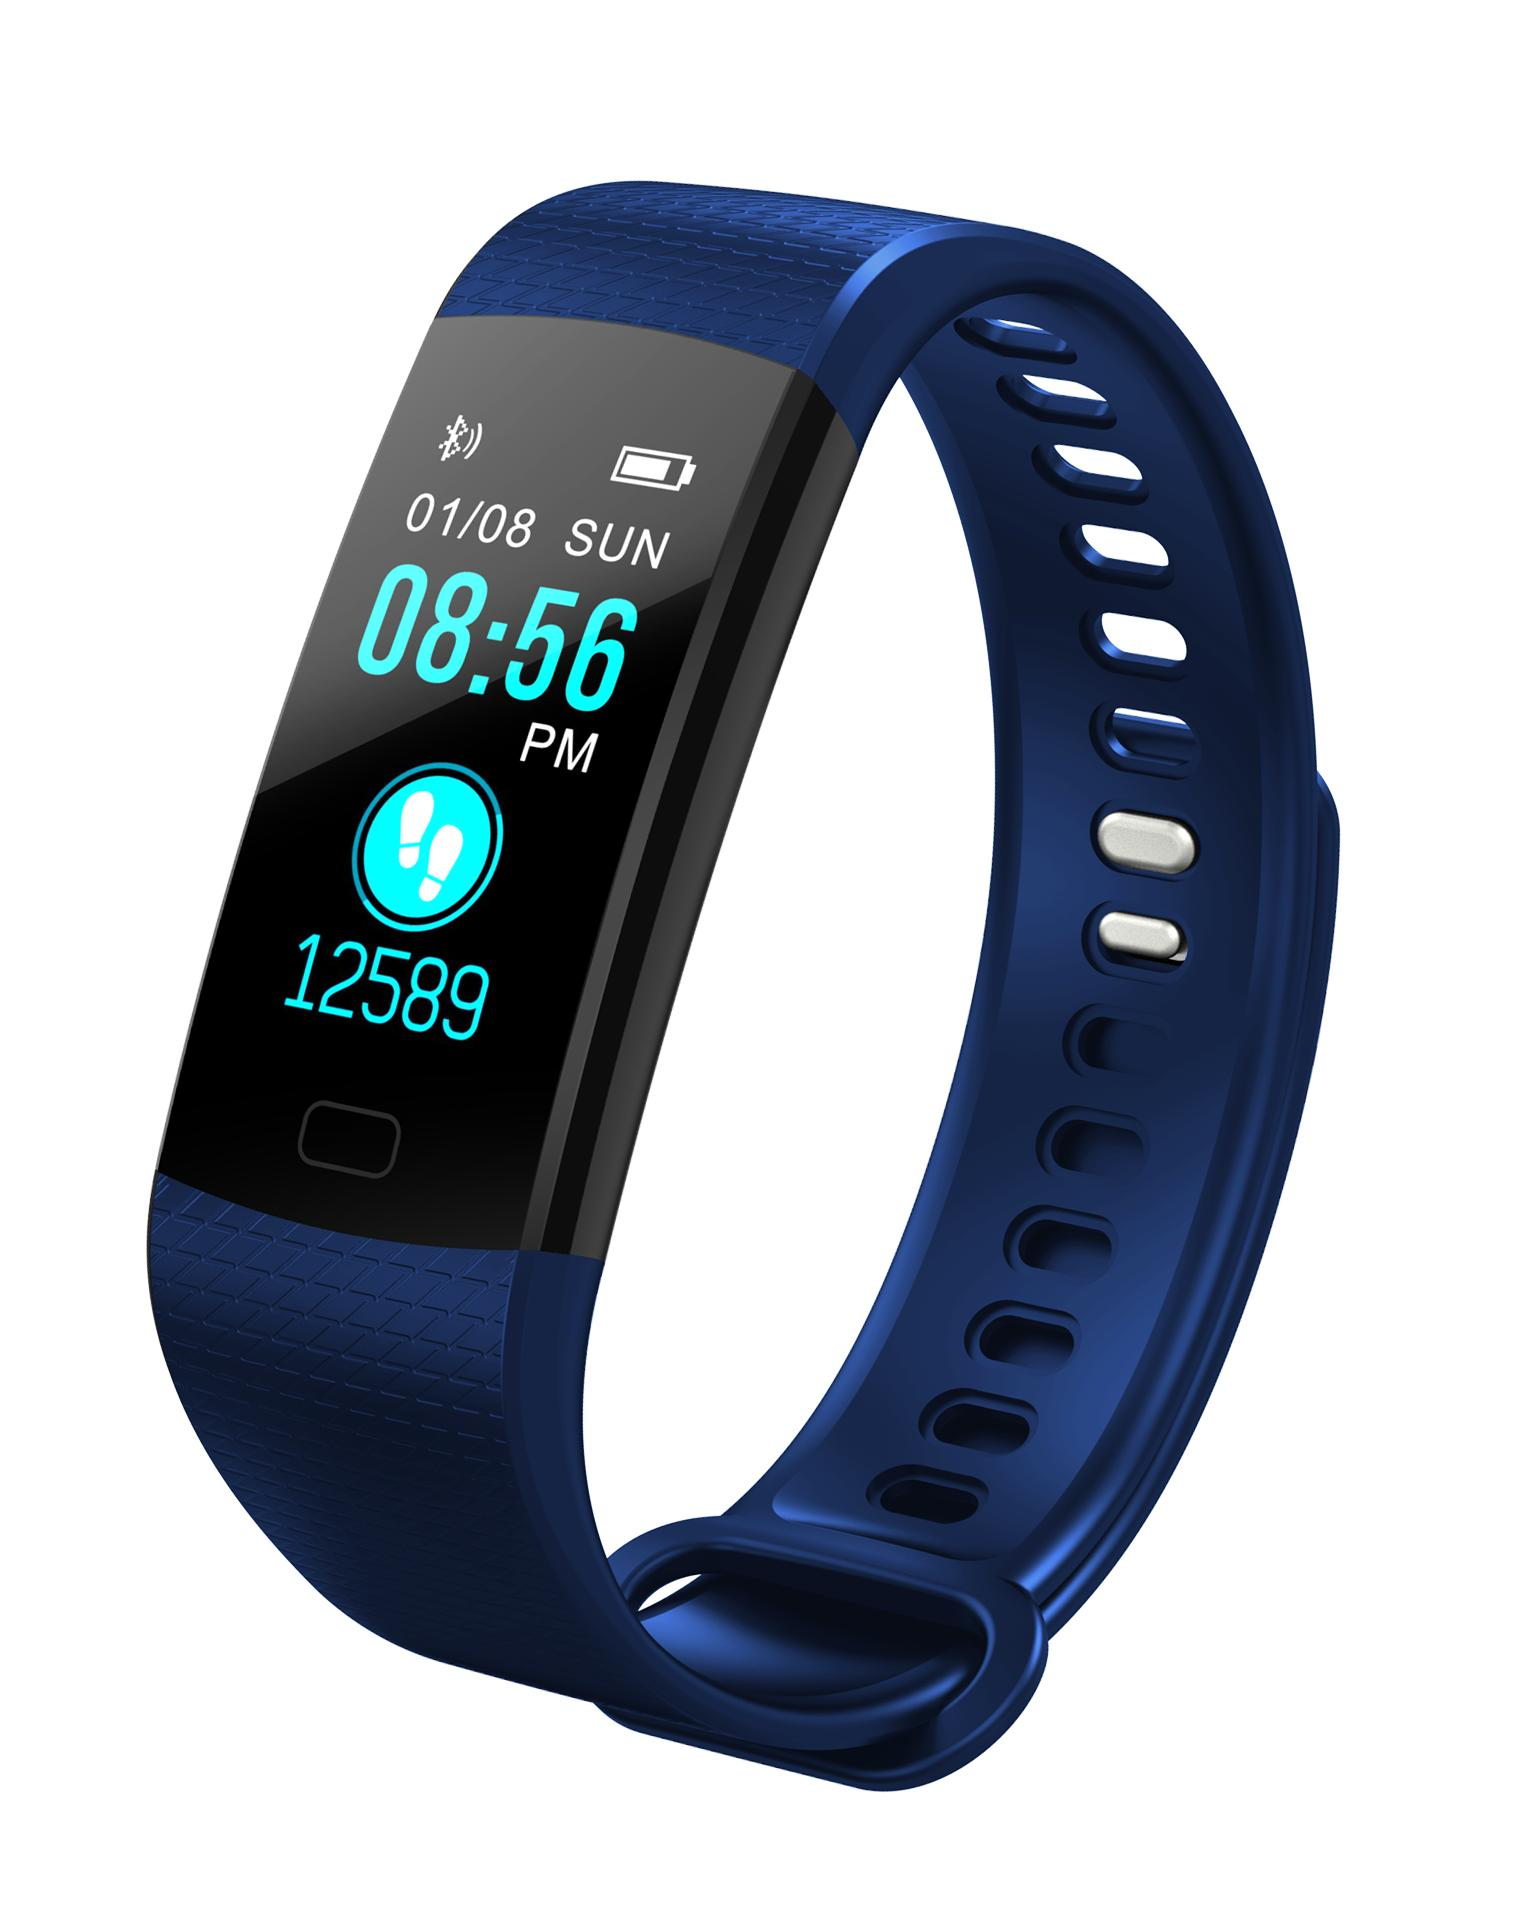 Heart Rate Monitor Ckdcares Smart Watch Bluetooth Supported Sleep Monitor for Android and iOS Activity Tracker Ships from Canada Touch Screen Display 44 mm x 38 mm Multiple Sports Mode Fitness Tracker